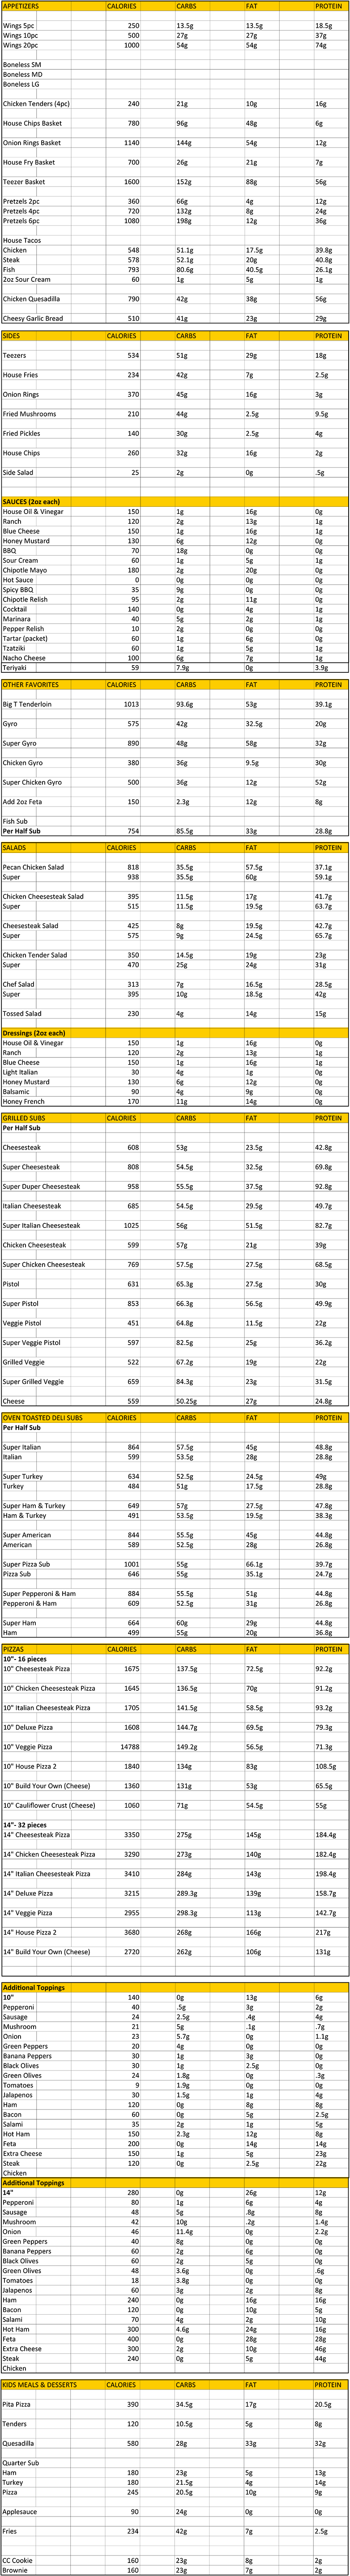 nutrition-chart